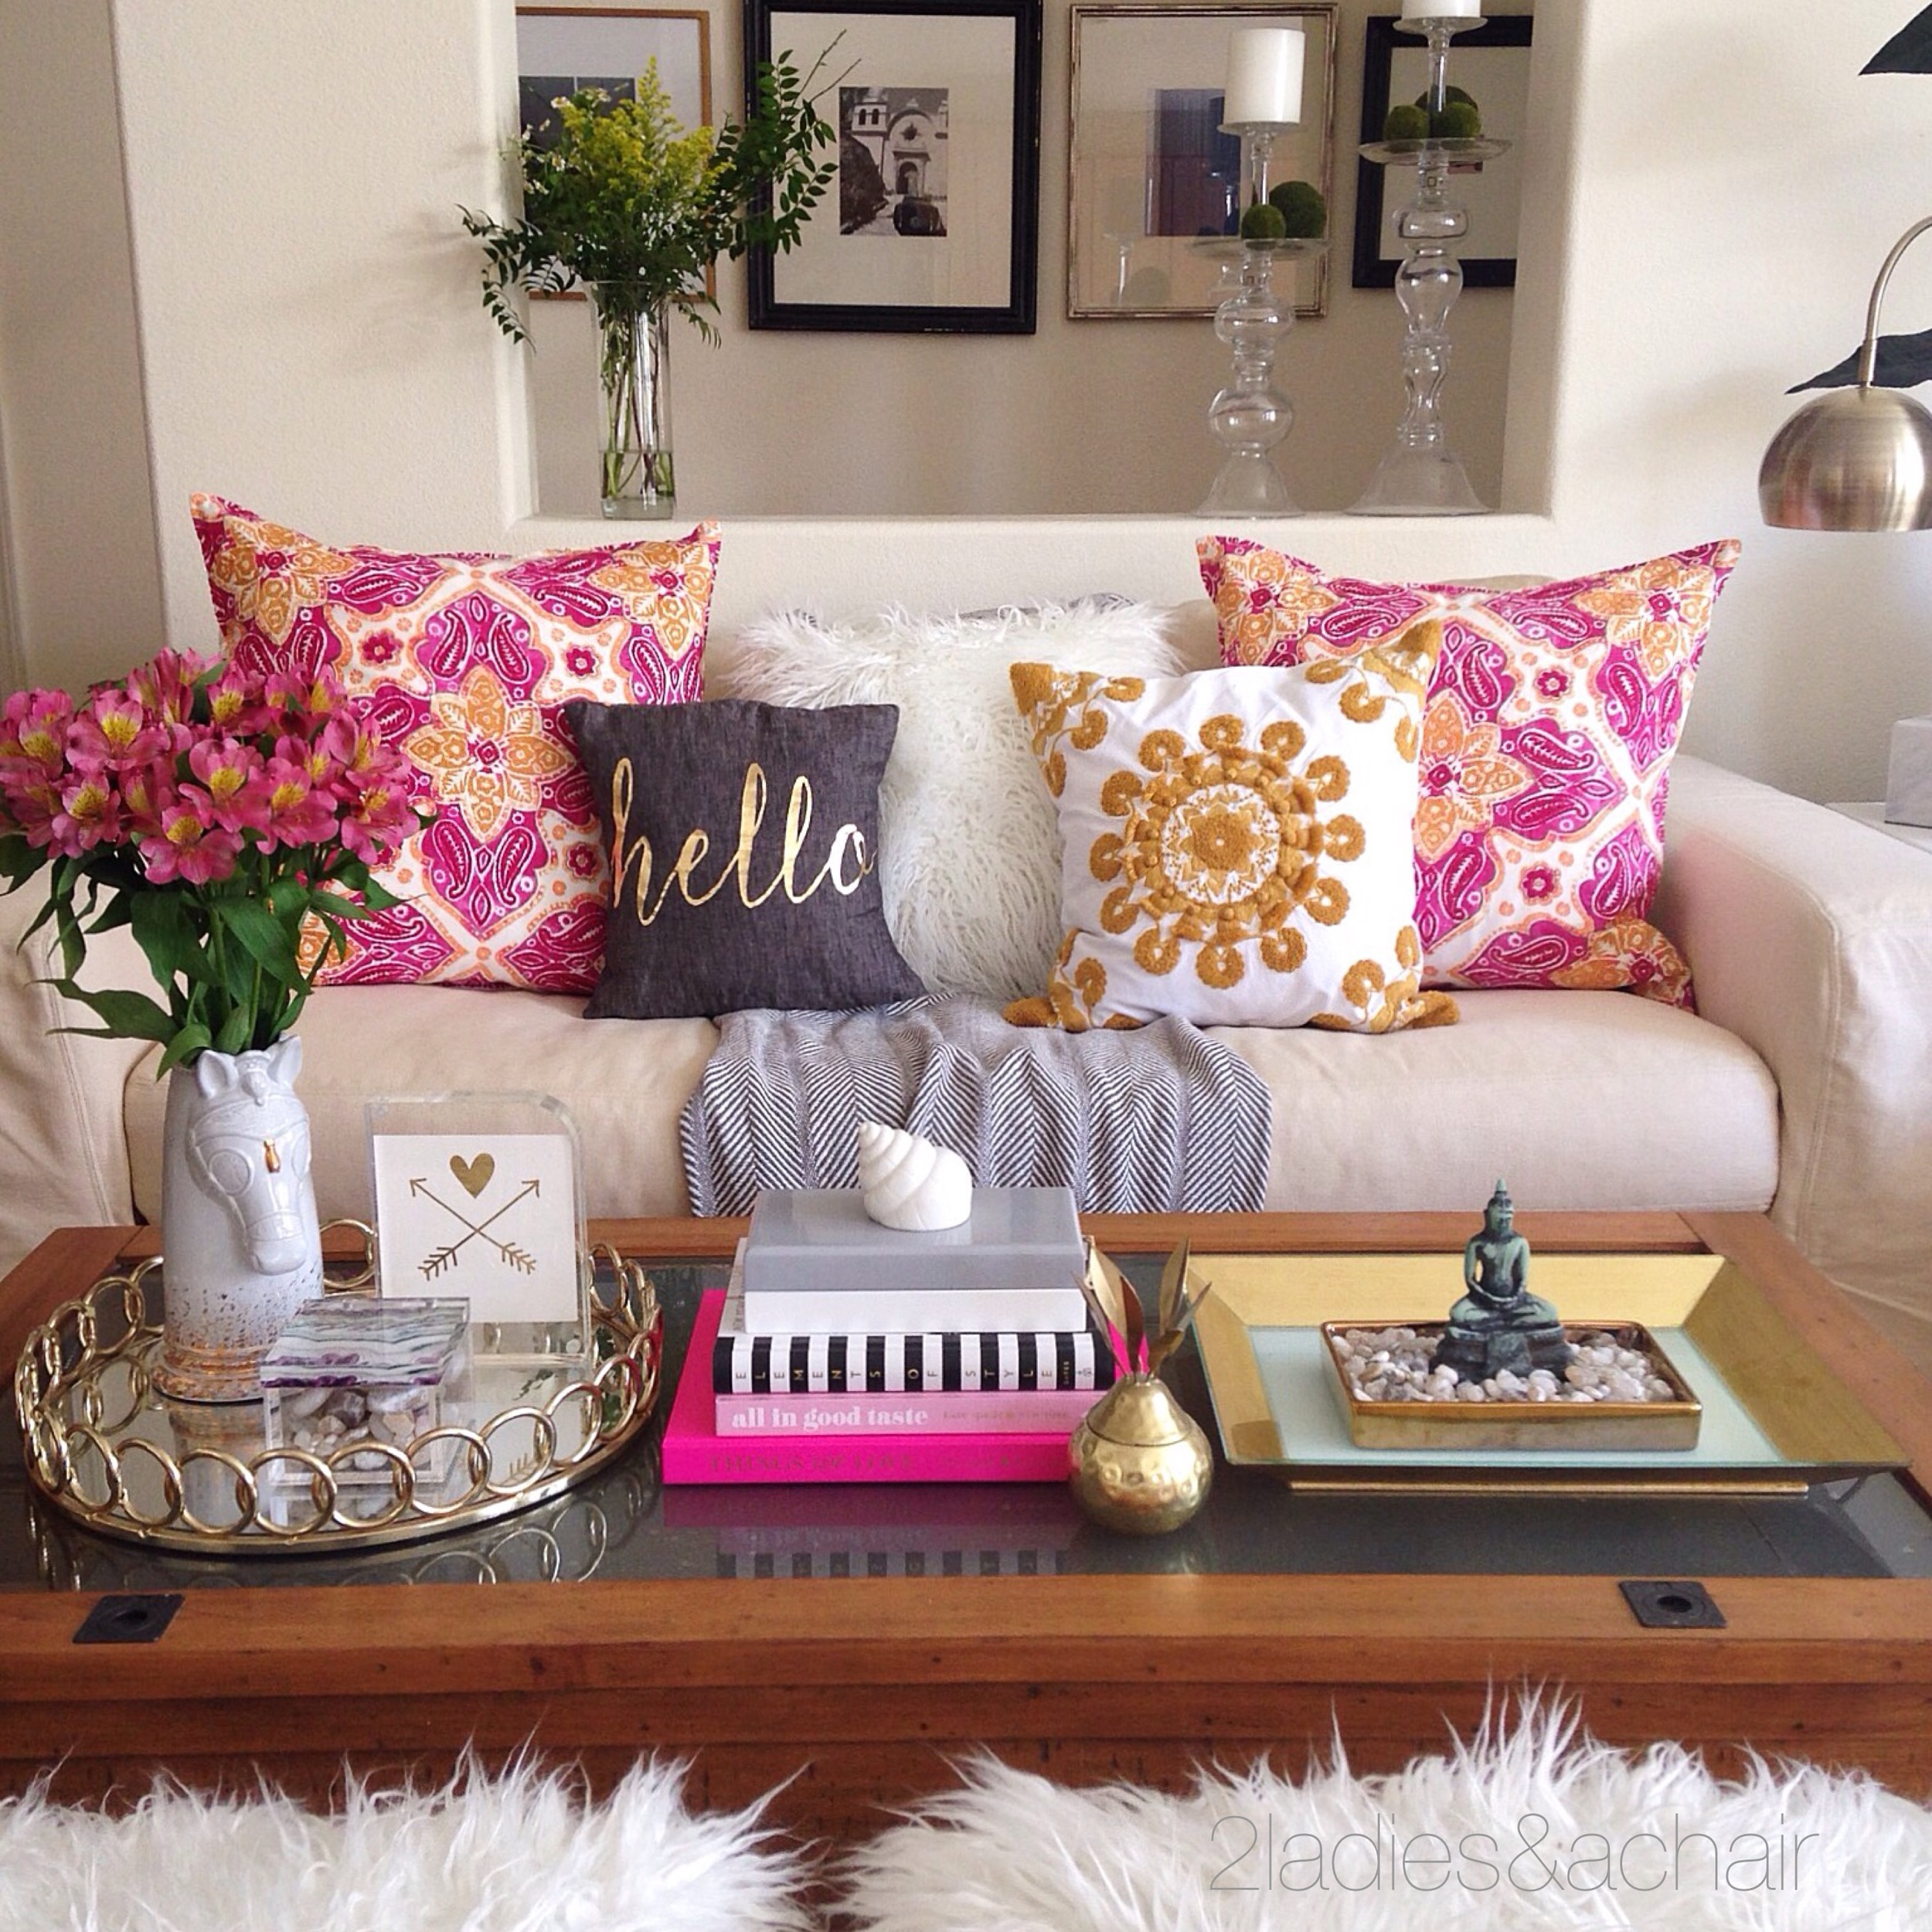 Obsession with Throw Pillows — 2 La s & A Chair